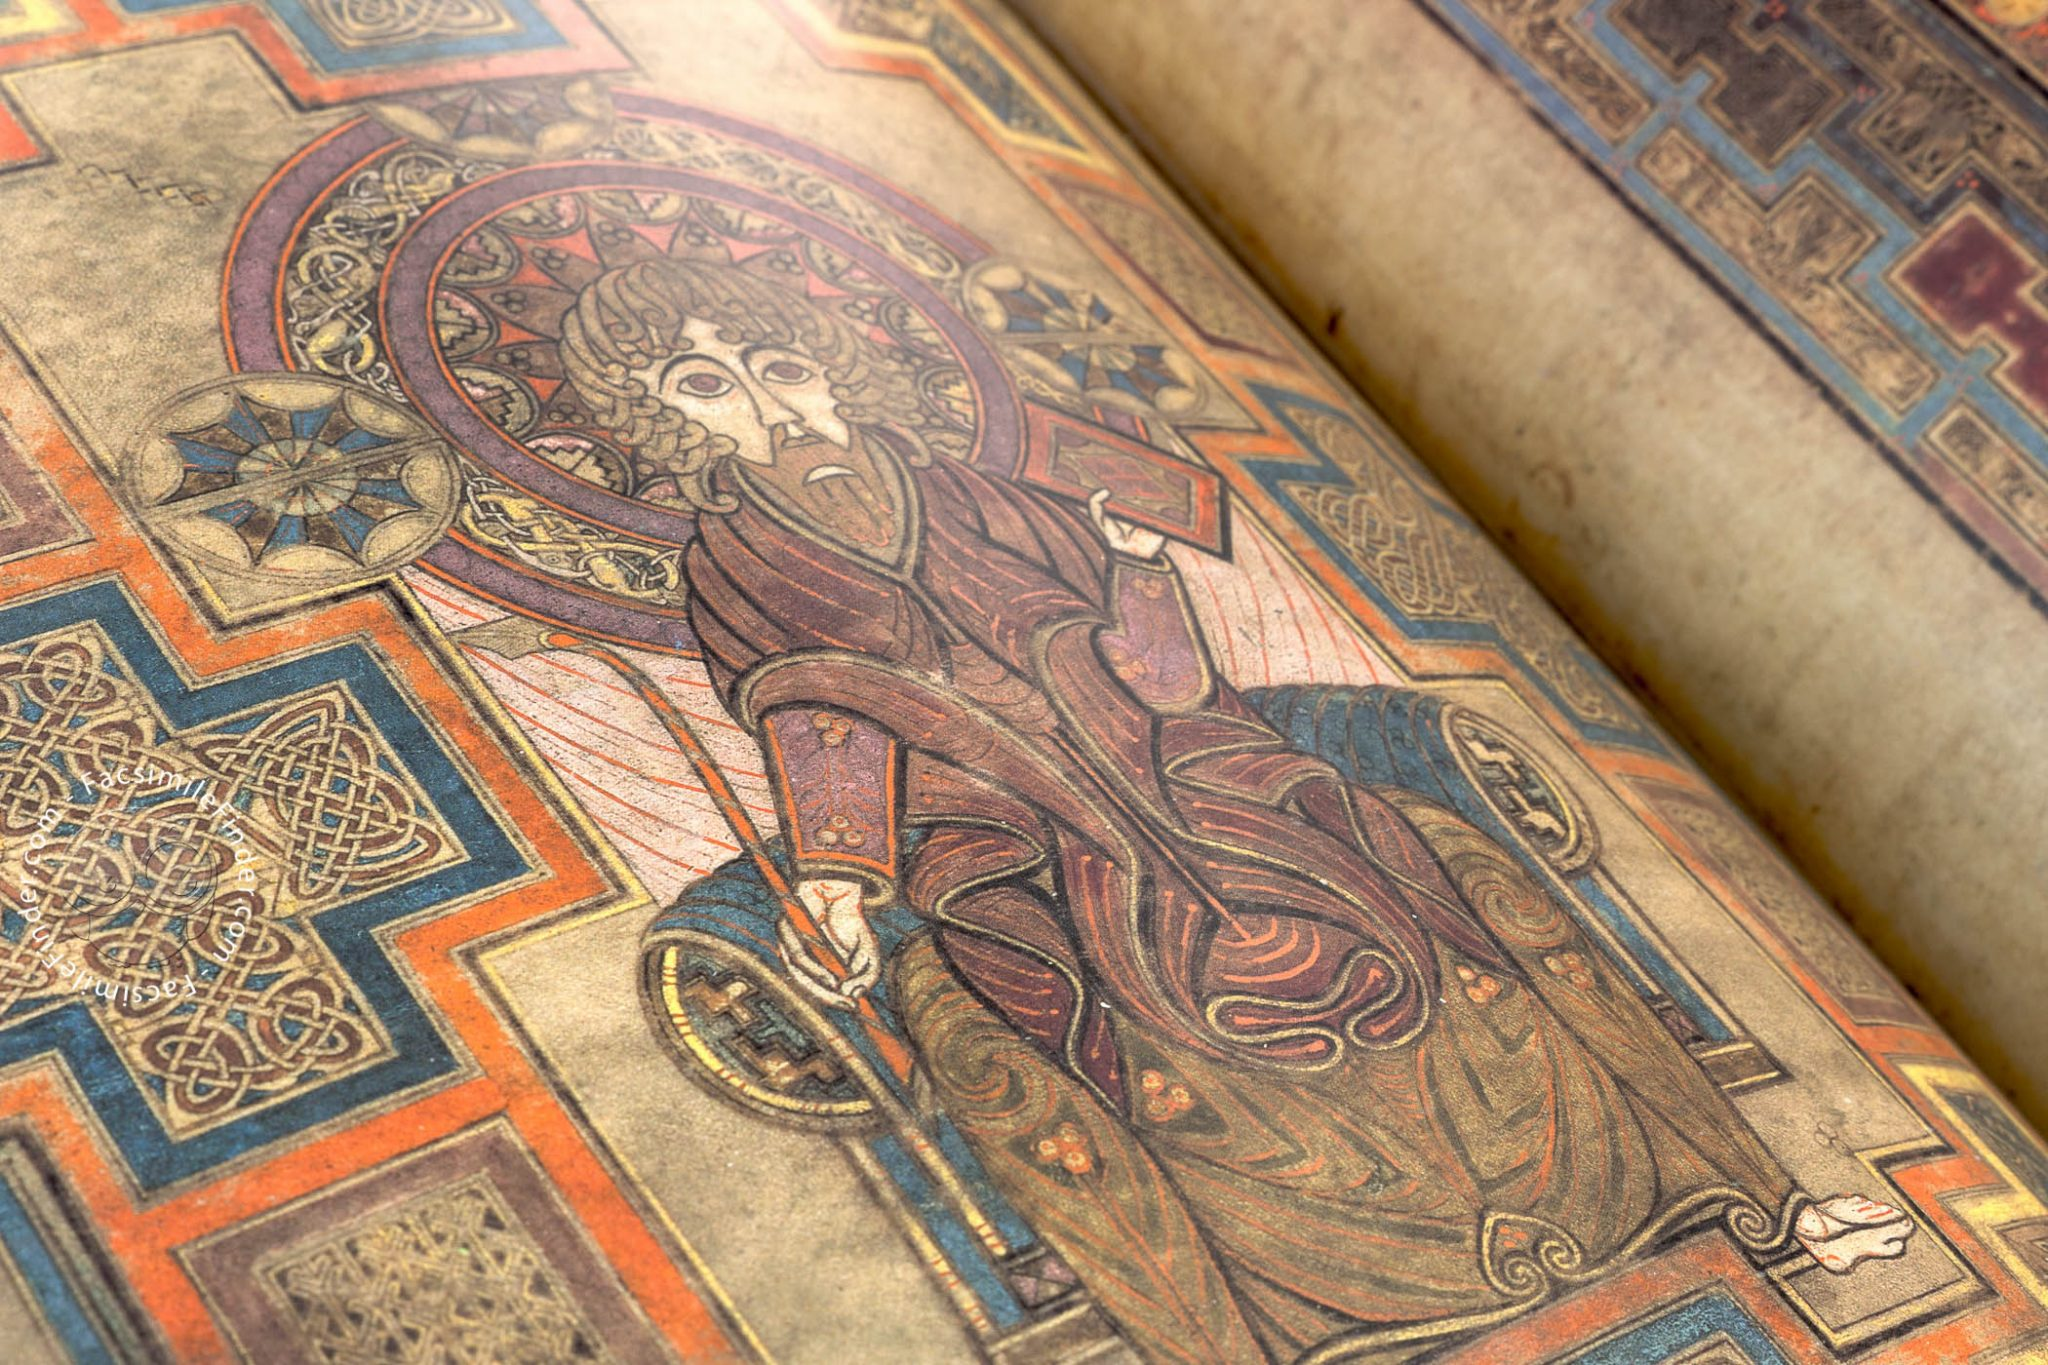 essay on the book of kells Check out our top free essays on book of kells to help you write your own essay.